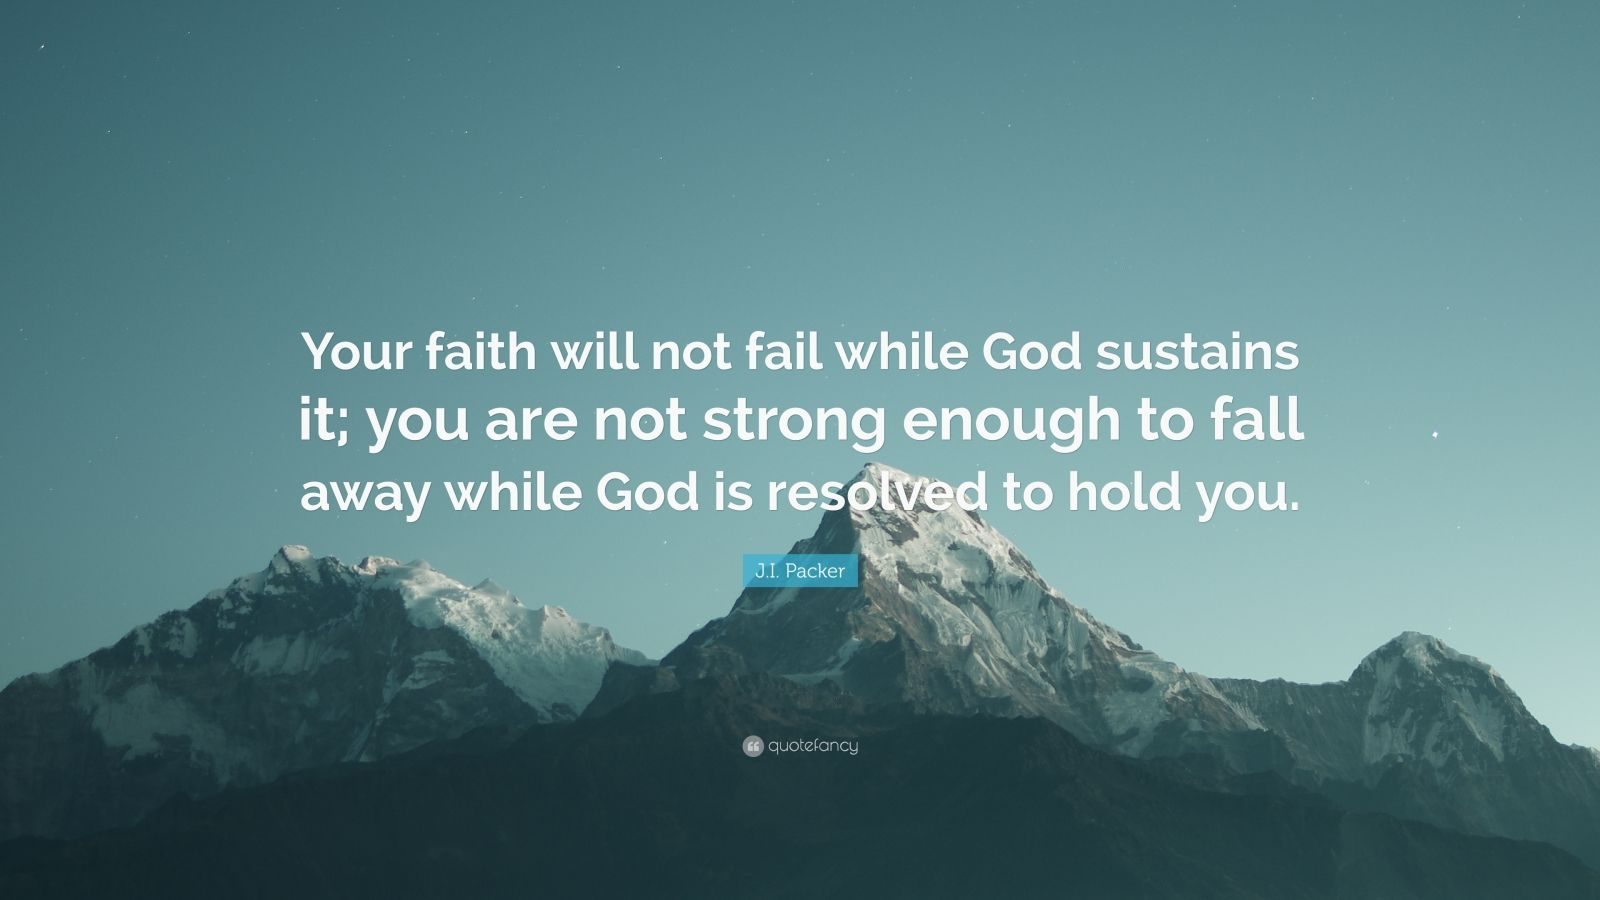 """J.I. Packer Quote: """"Your faith will not fail while God sustains it; you are not strong enough to fall away while God is resolved to hold you."""""""